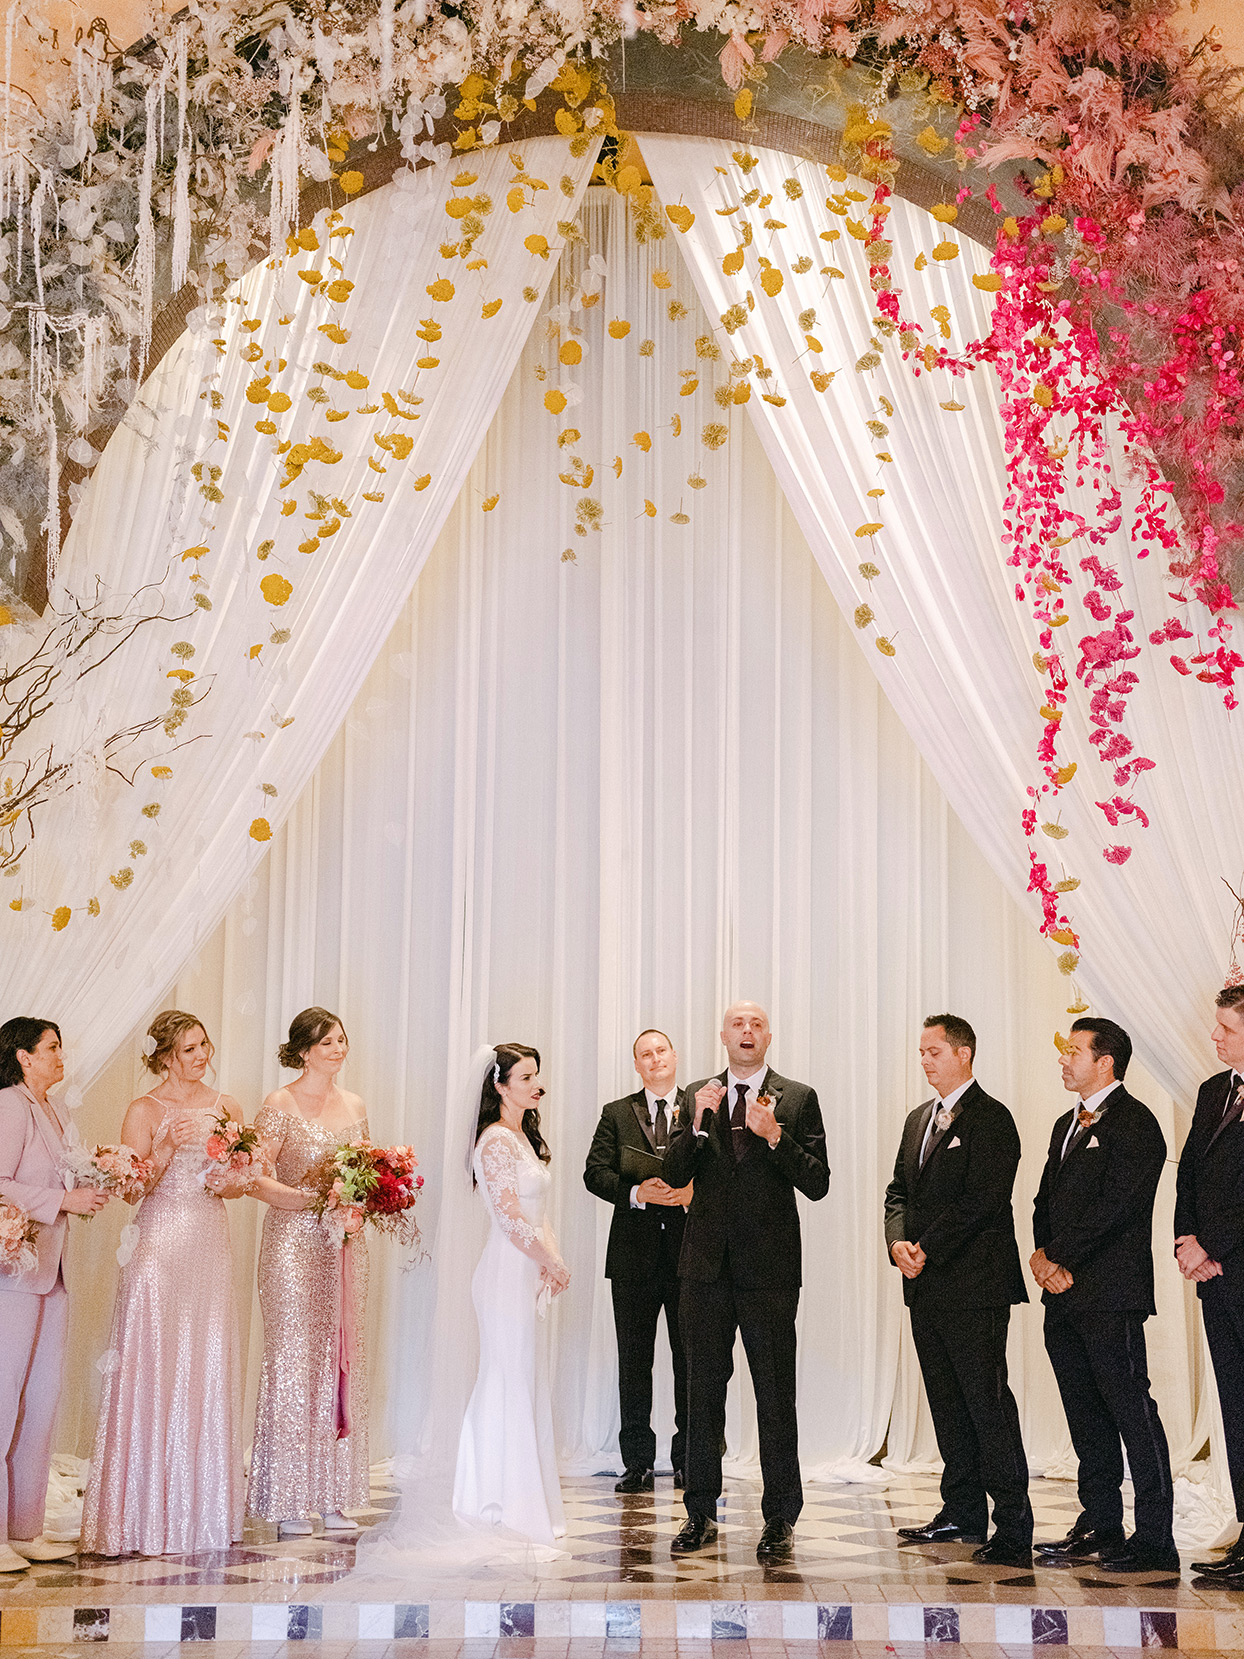 groom addressing guests during wedding ceremony